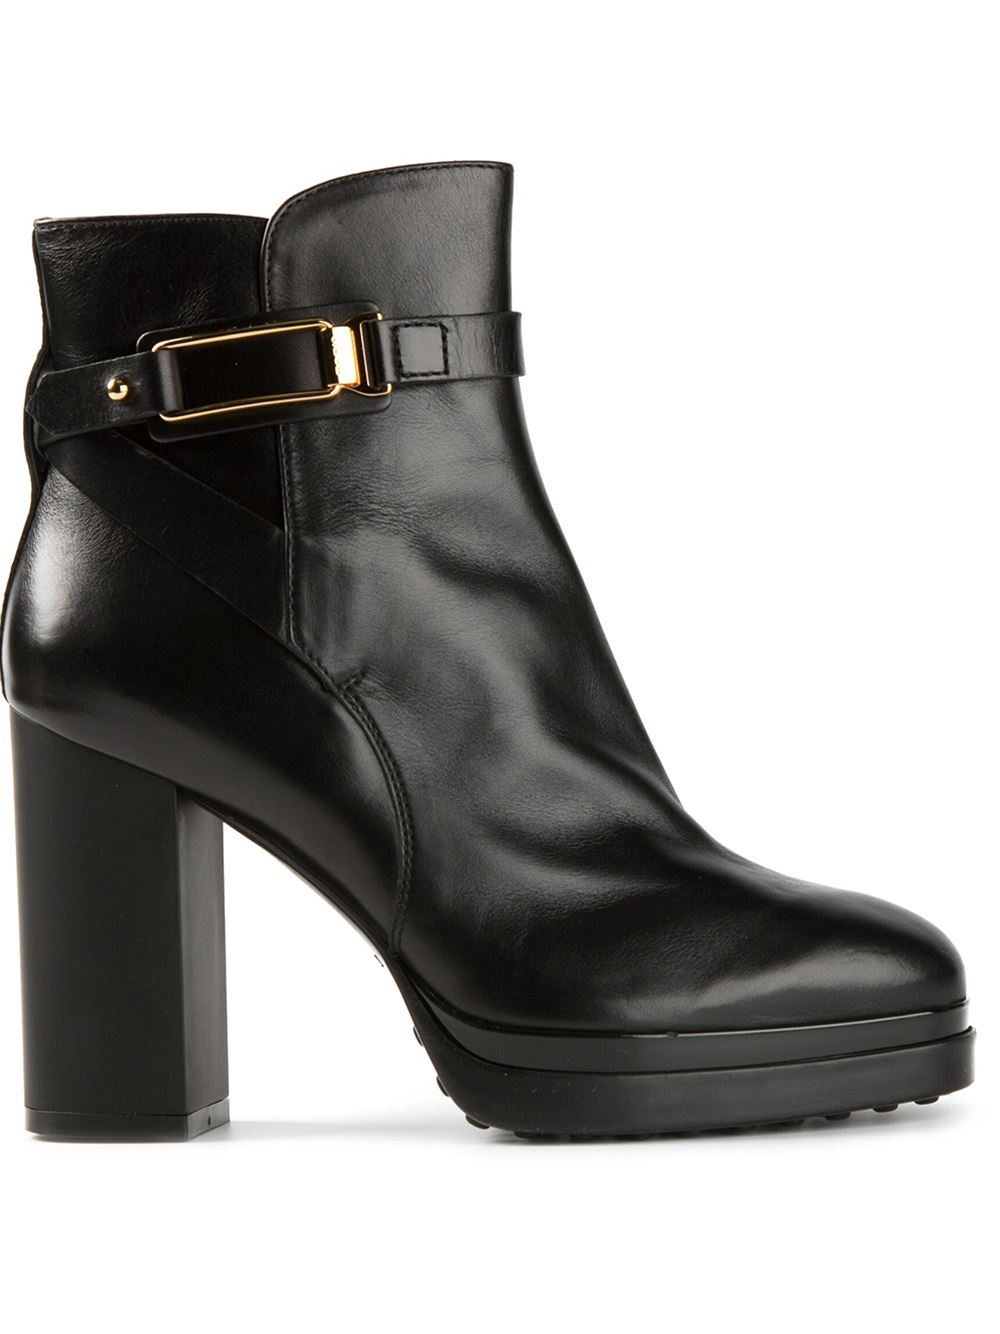 Tod's Platform Ankle Boots discount eastbay cost cheap price clearance cheap price outlet low price clearance 2014 new 1cVrYLN